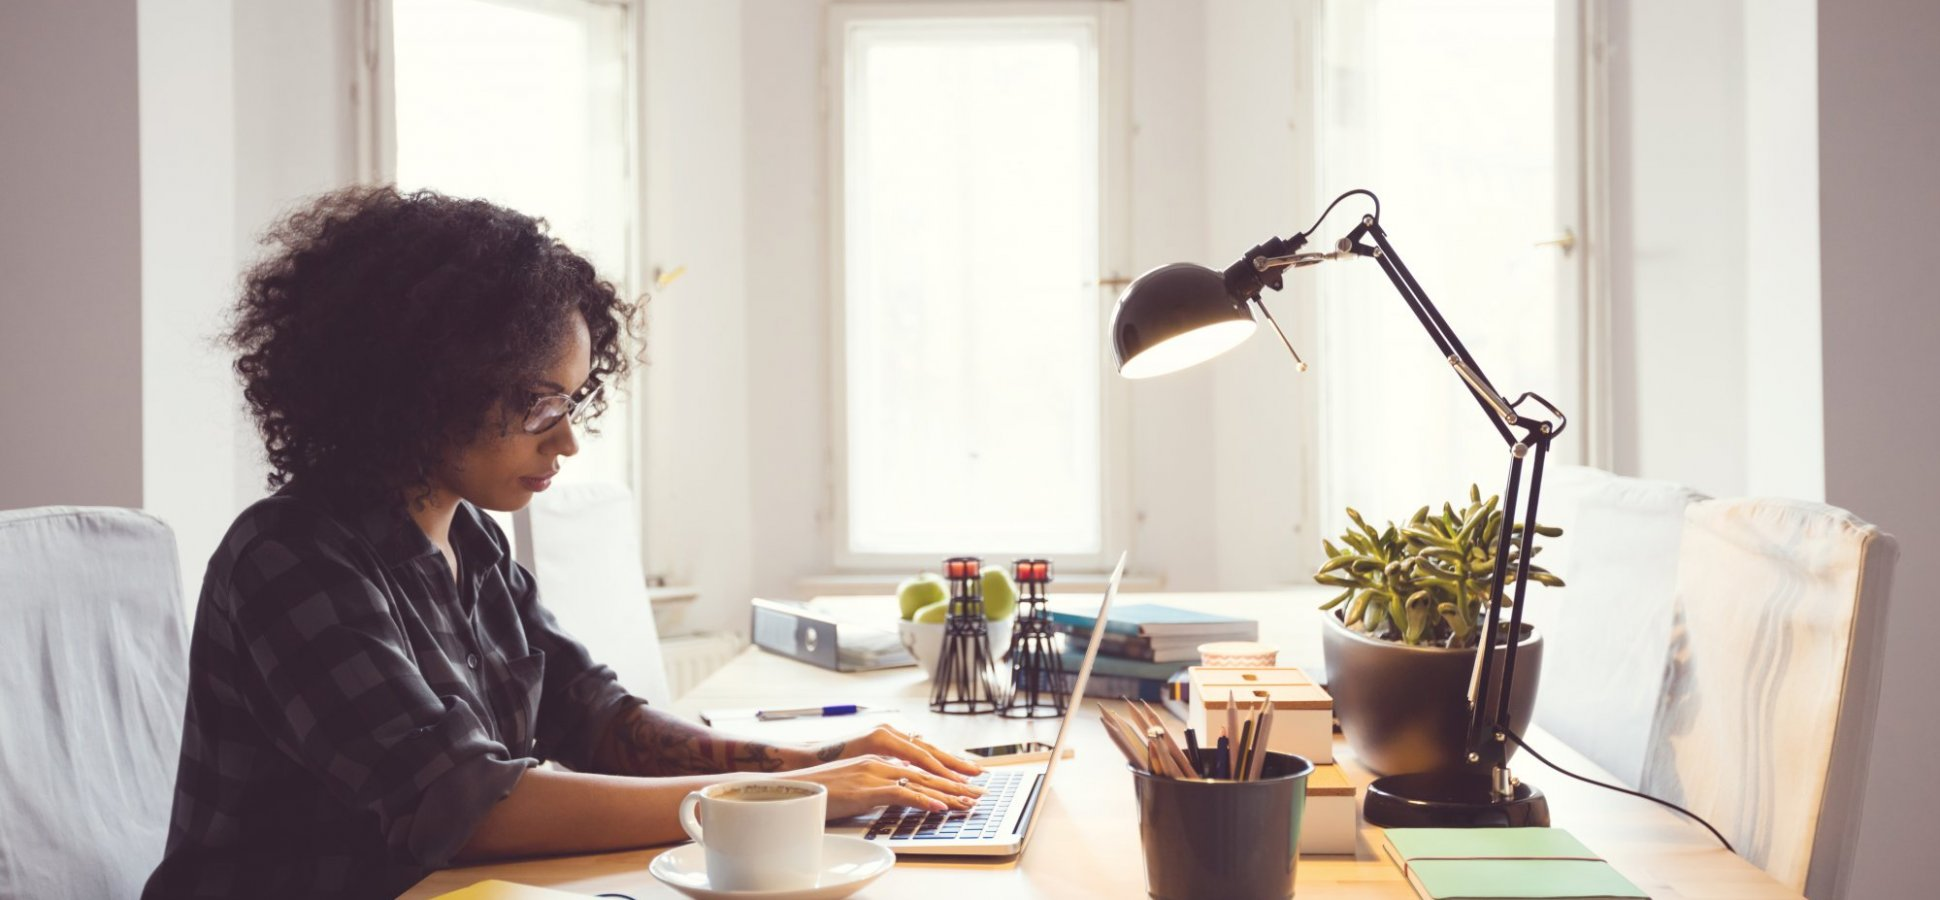 5 myths about remote work that should be considered before leaving the office